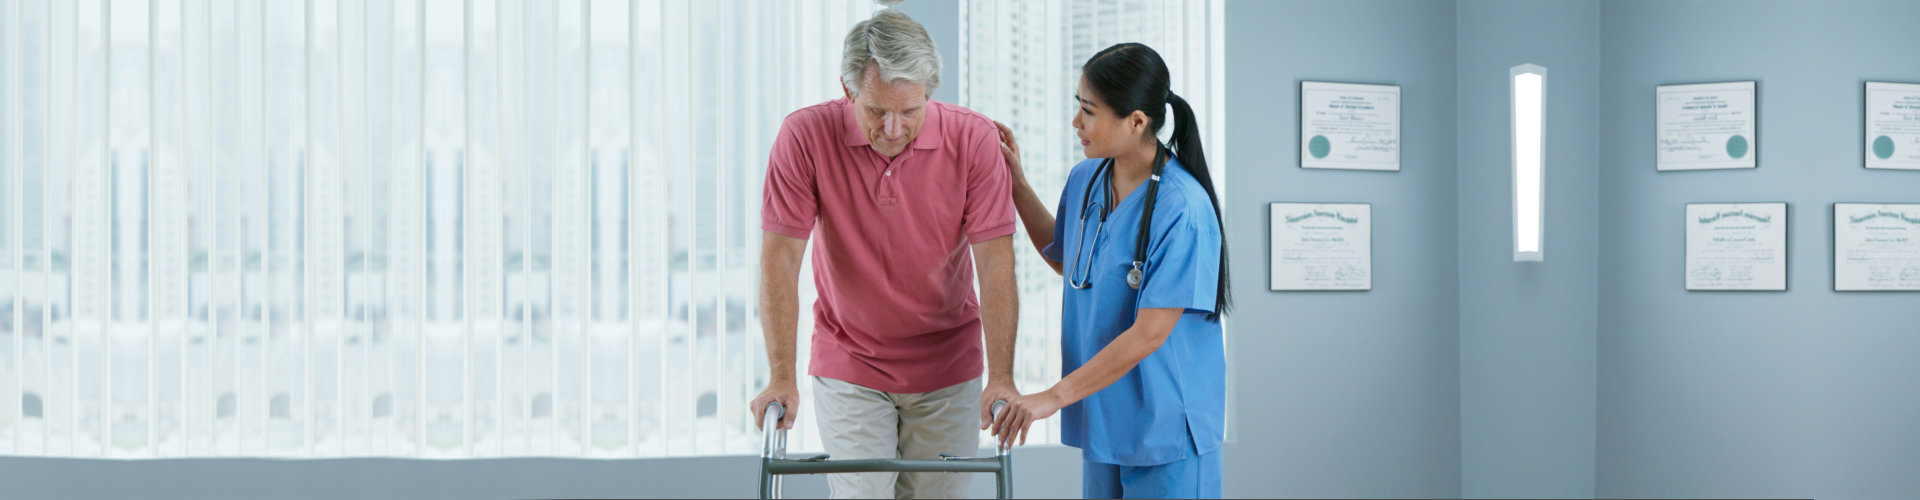 Physical therapist or doctor helping older male patient learn to walk with a walker. Female nurse assisting senior man with recovery after surgery